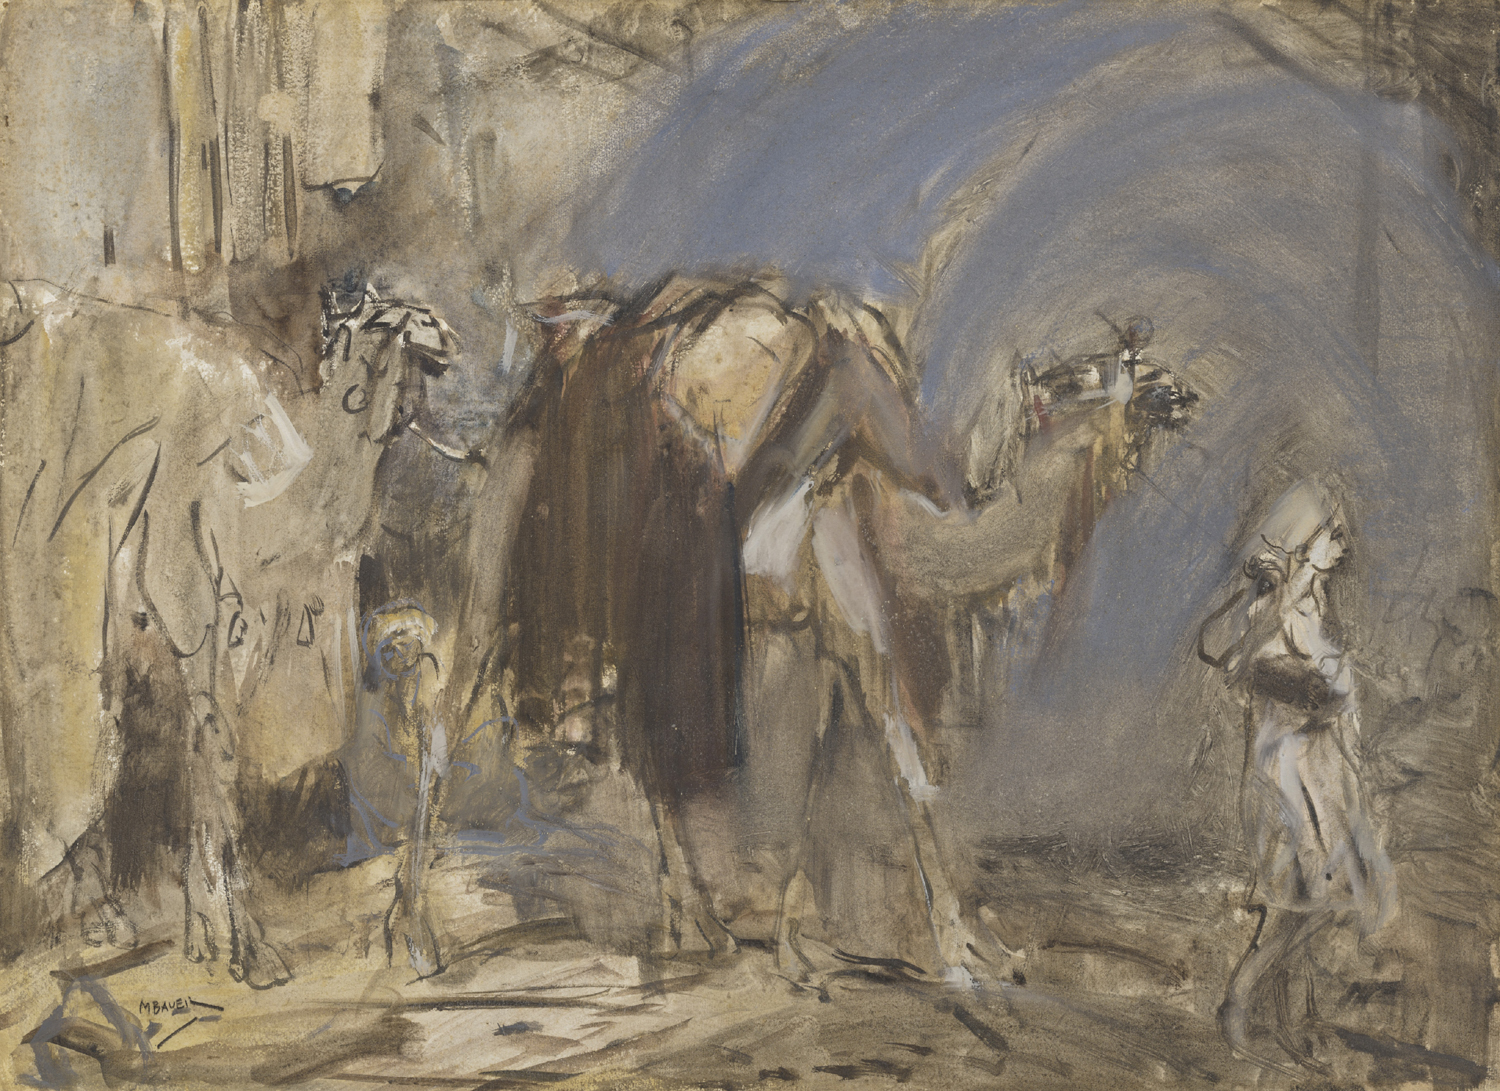 Marius Bauer | Camels loaded with bags | Kunsthandel Bies | Bies Gallery